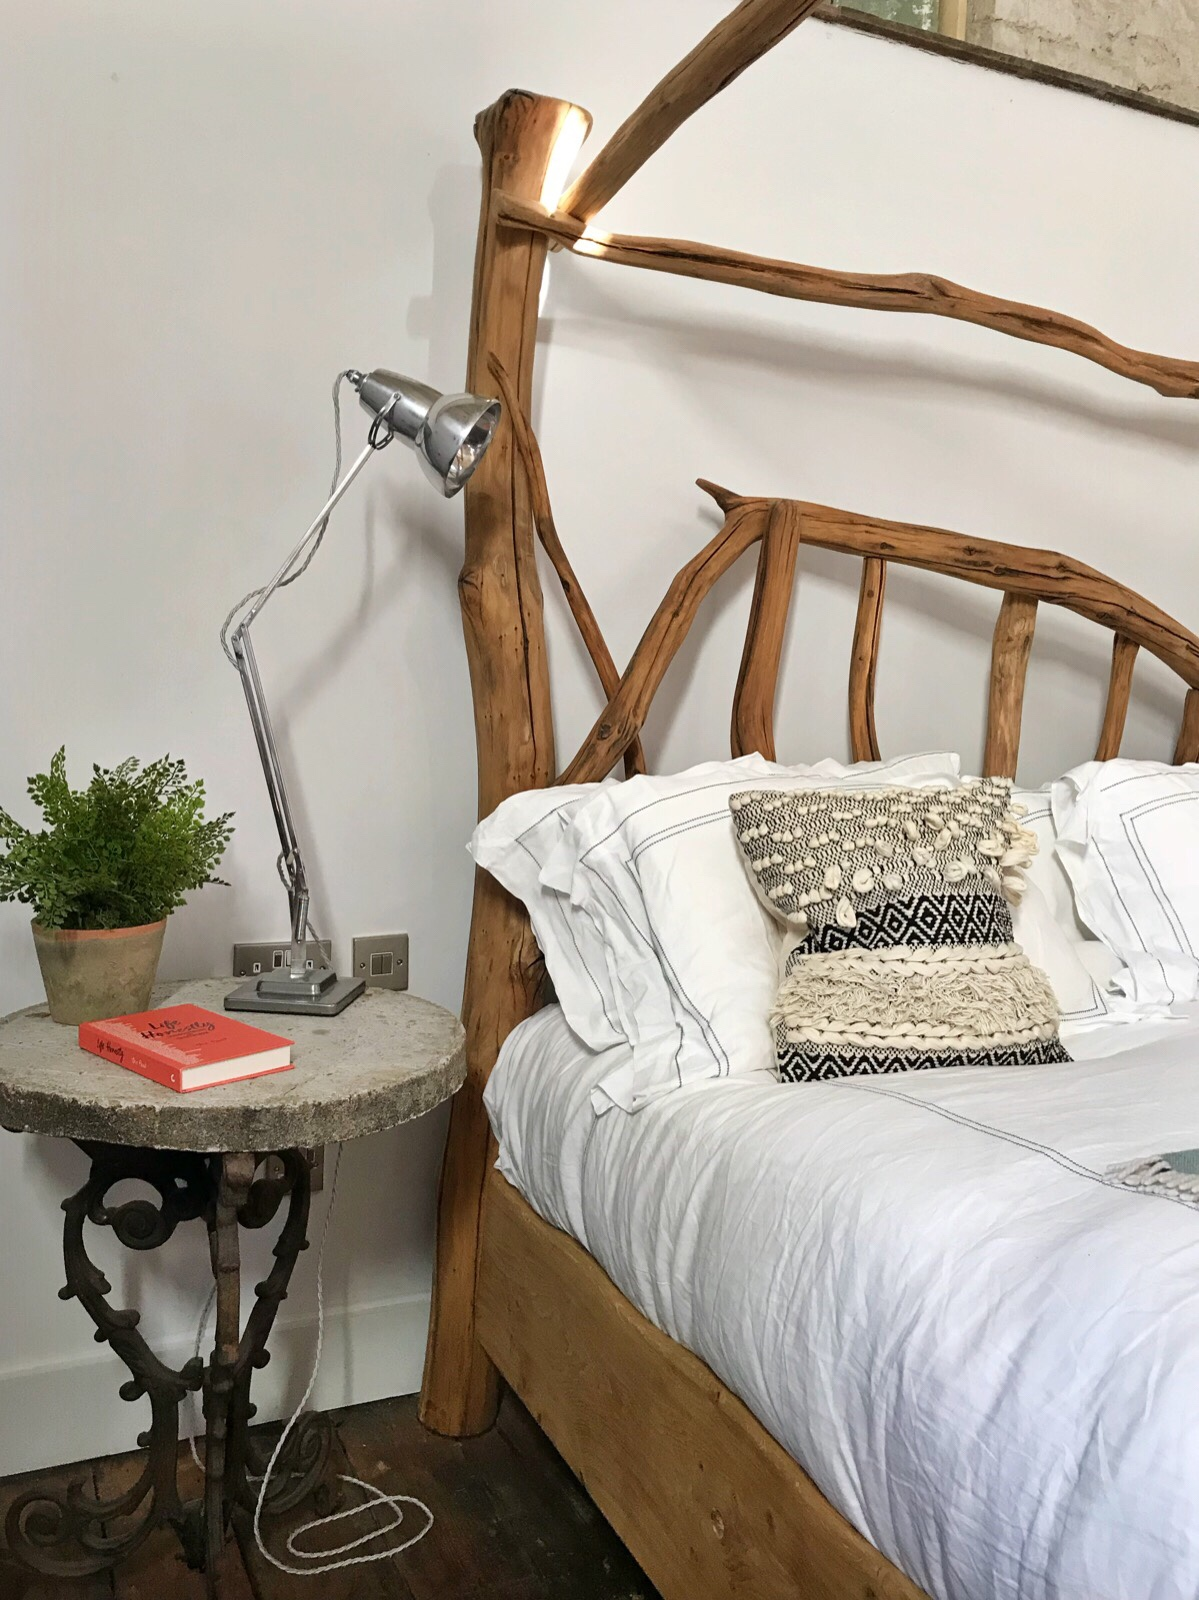 Four poster bed made from driftwood